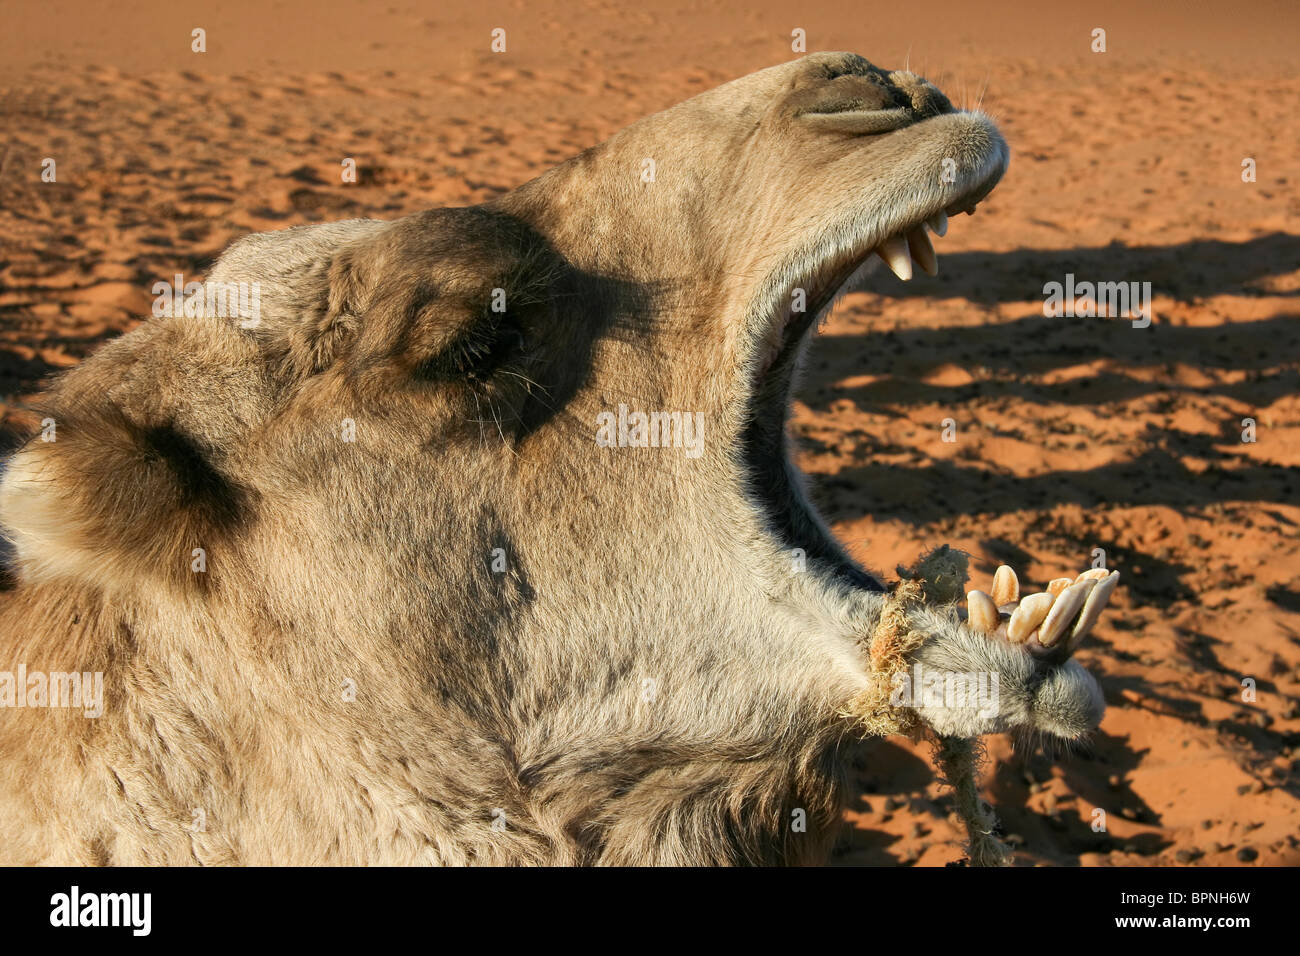 Touristic highlight: camel rides and desert trekking in the Moroccan sand dunes of Erg Chebbi, Western Sahara. - Stock Image